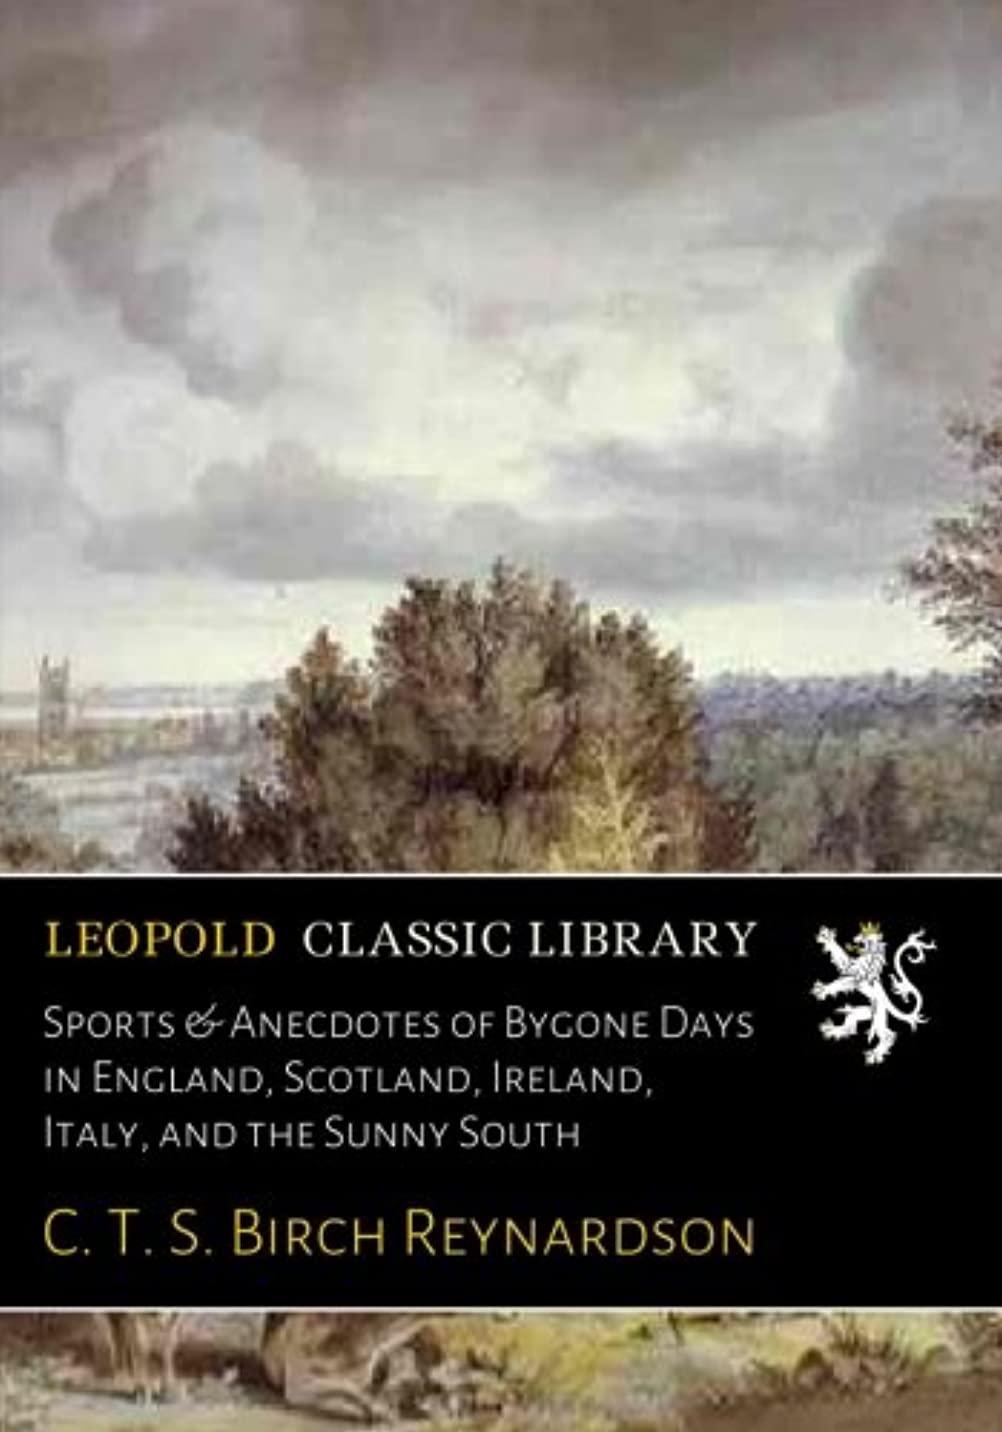 Sports & Anecdotes of Bygone Days in England, Scotland, Ireland, Italy, and the Sunny South